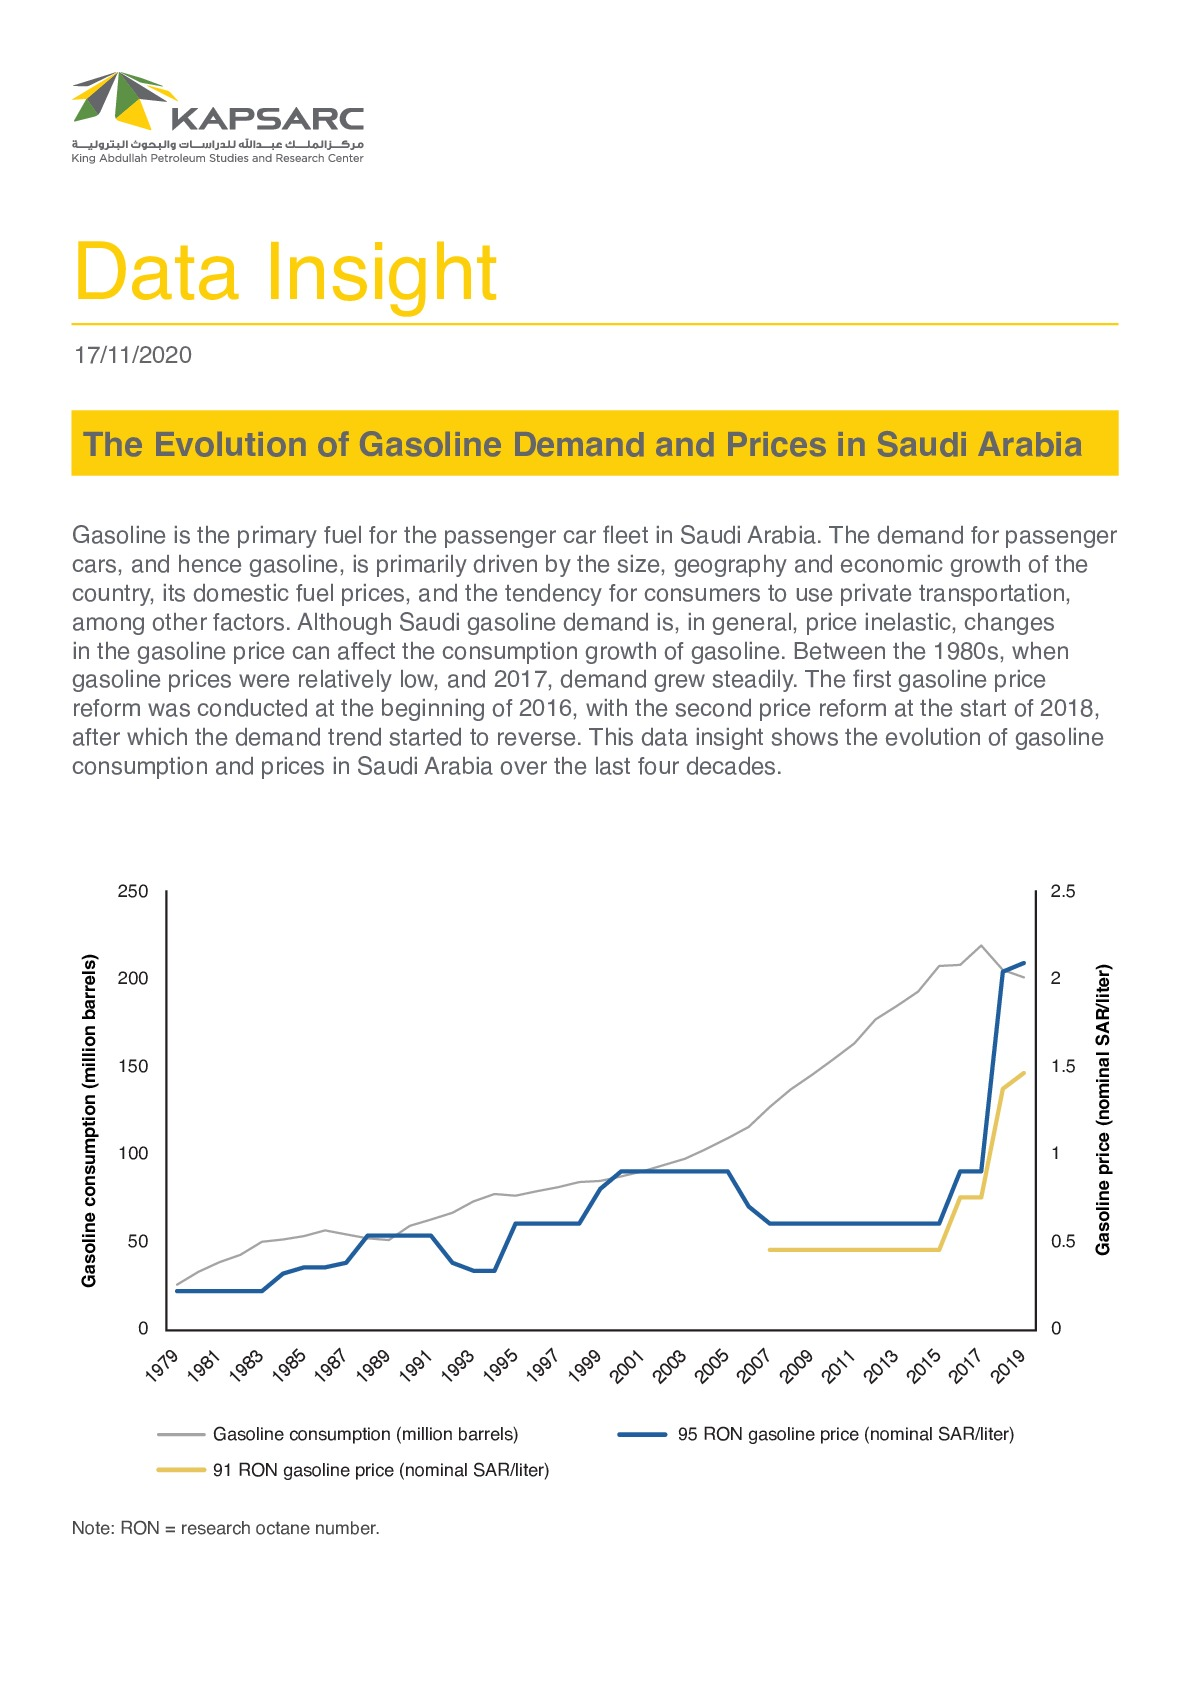 The Evolution of Gasoline Demand and Prices in Saudi Arabia